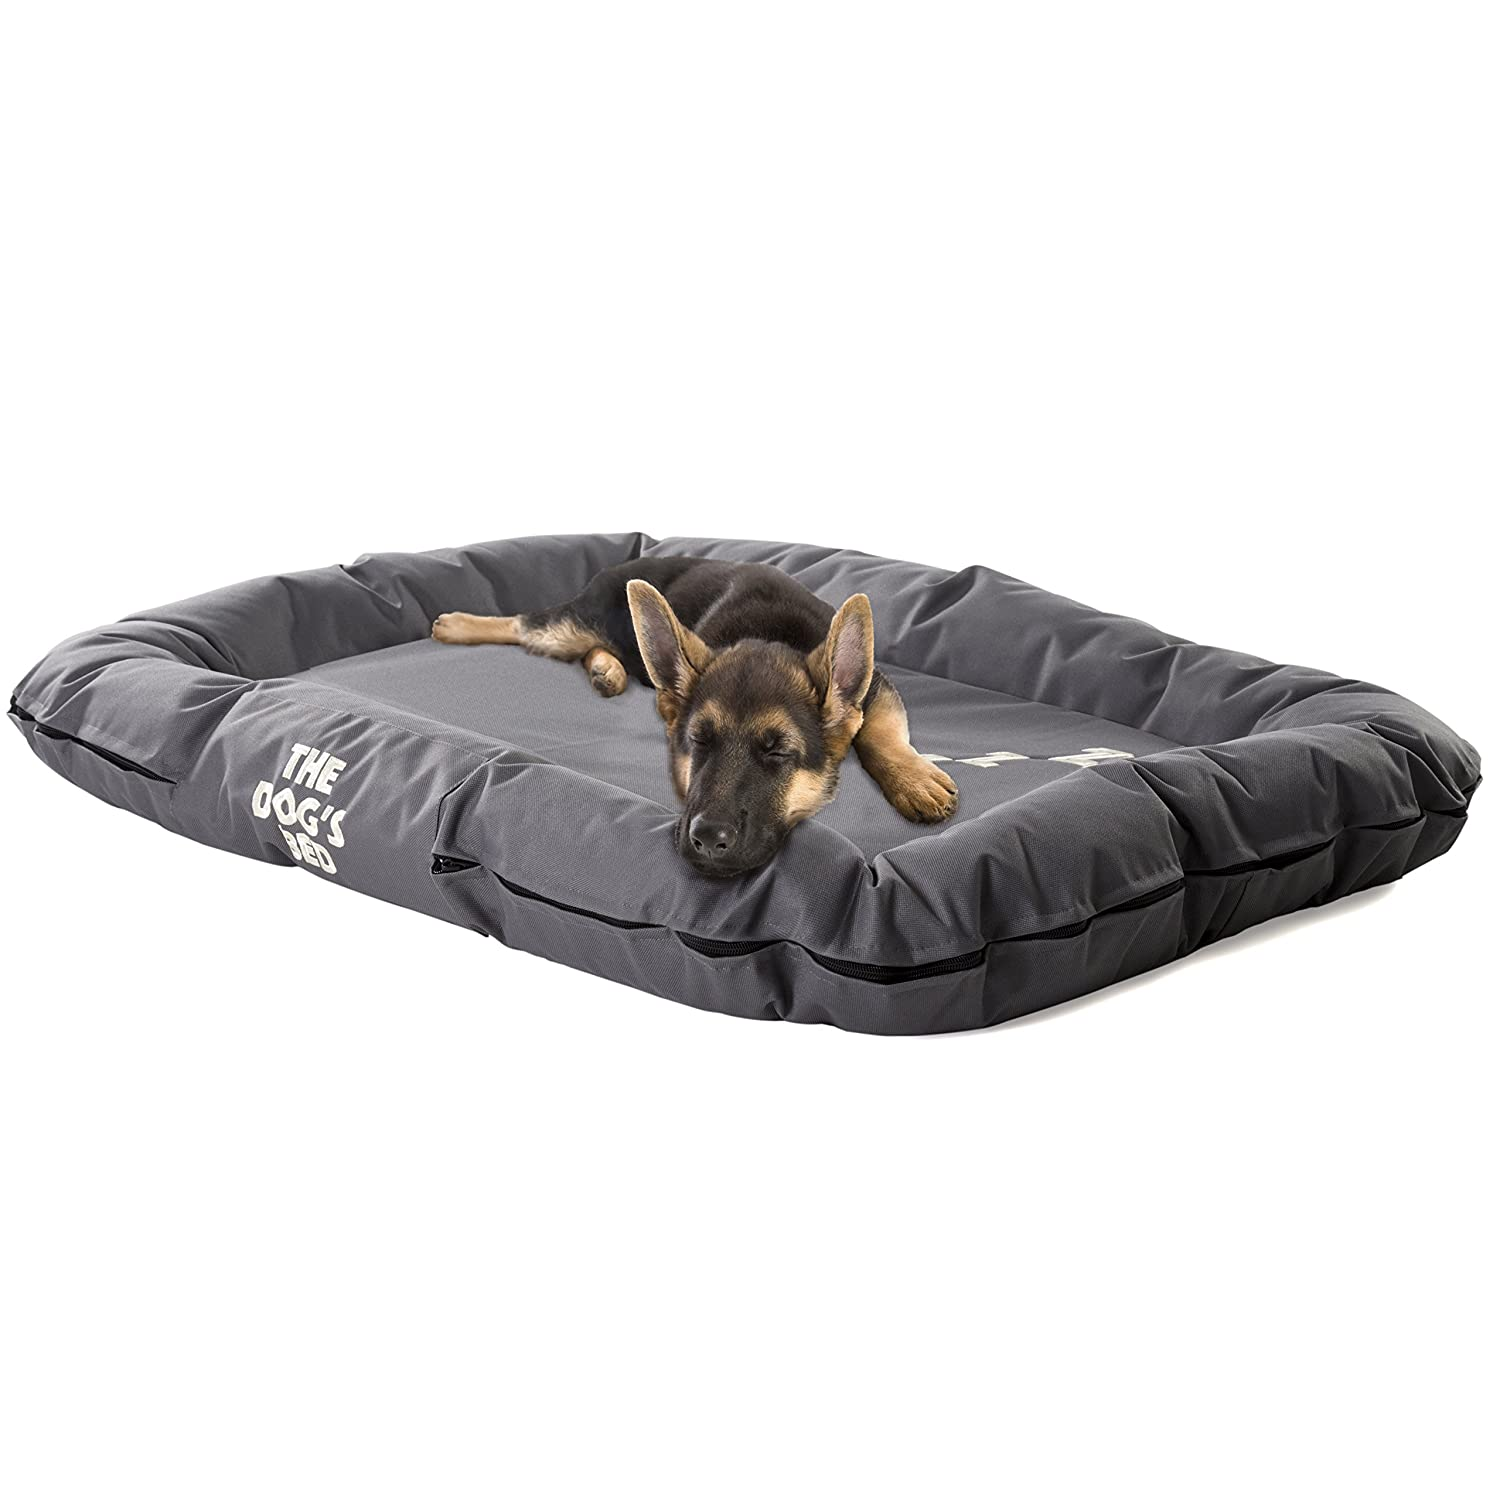 Amazon The Dog s Bed Premium Waterproof Dog Bed S to XXL